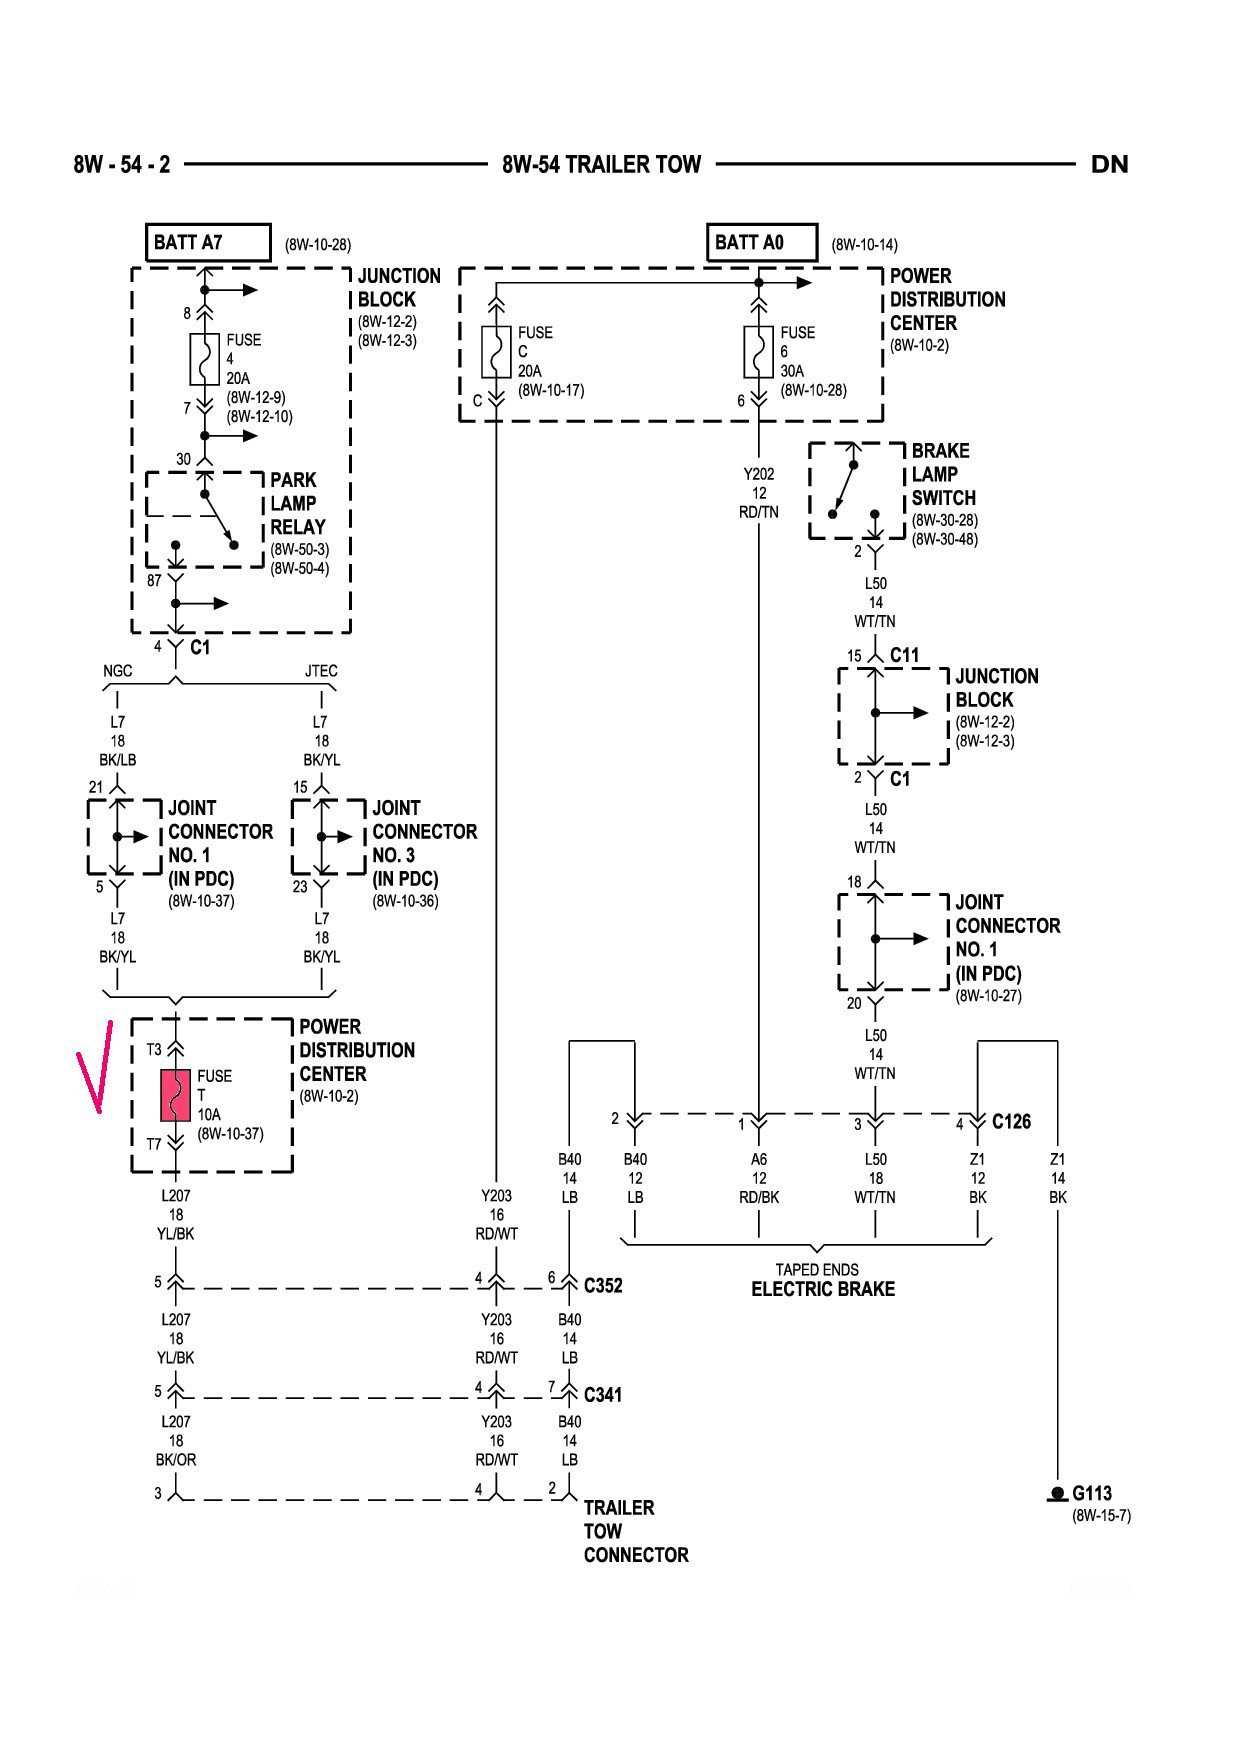 2002 Dodge Dakota Trailer Wiring Diagram